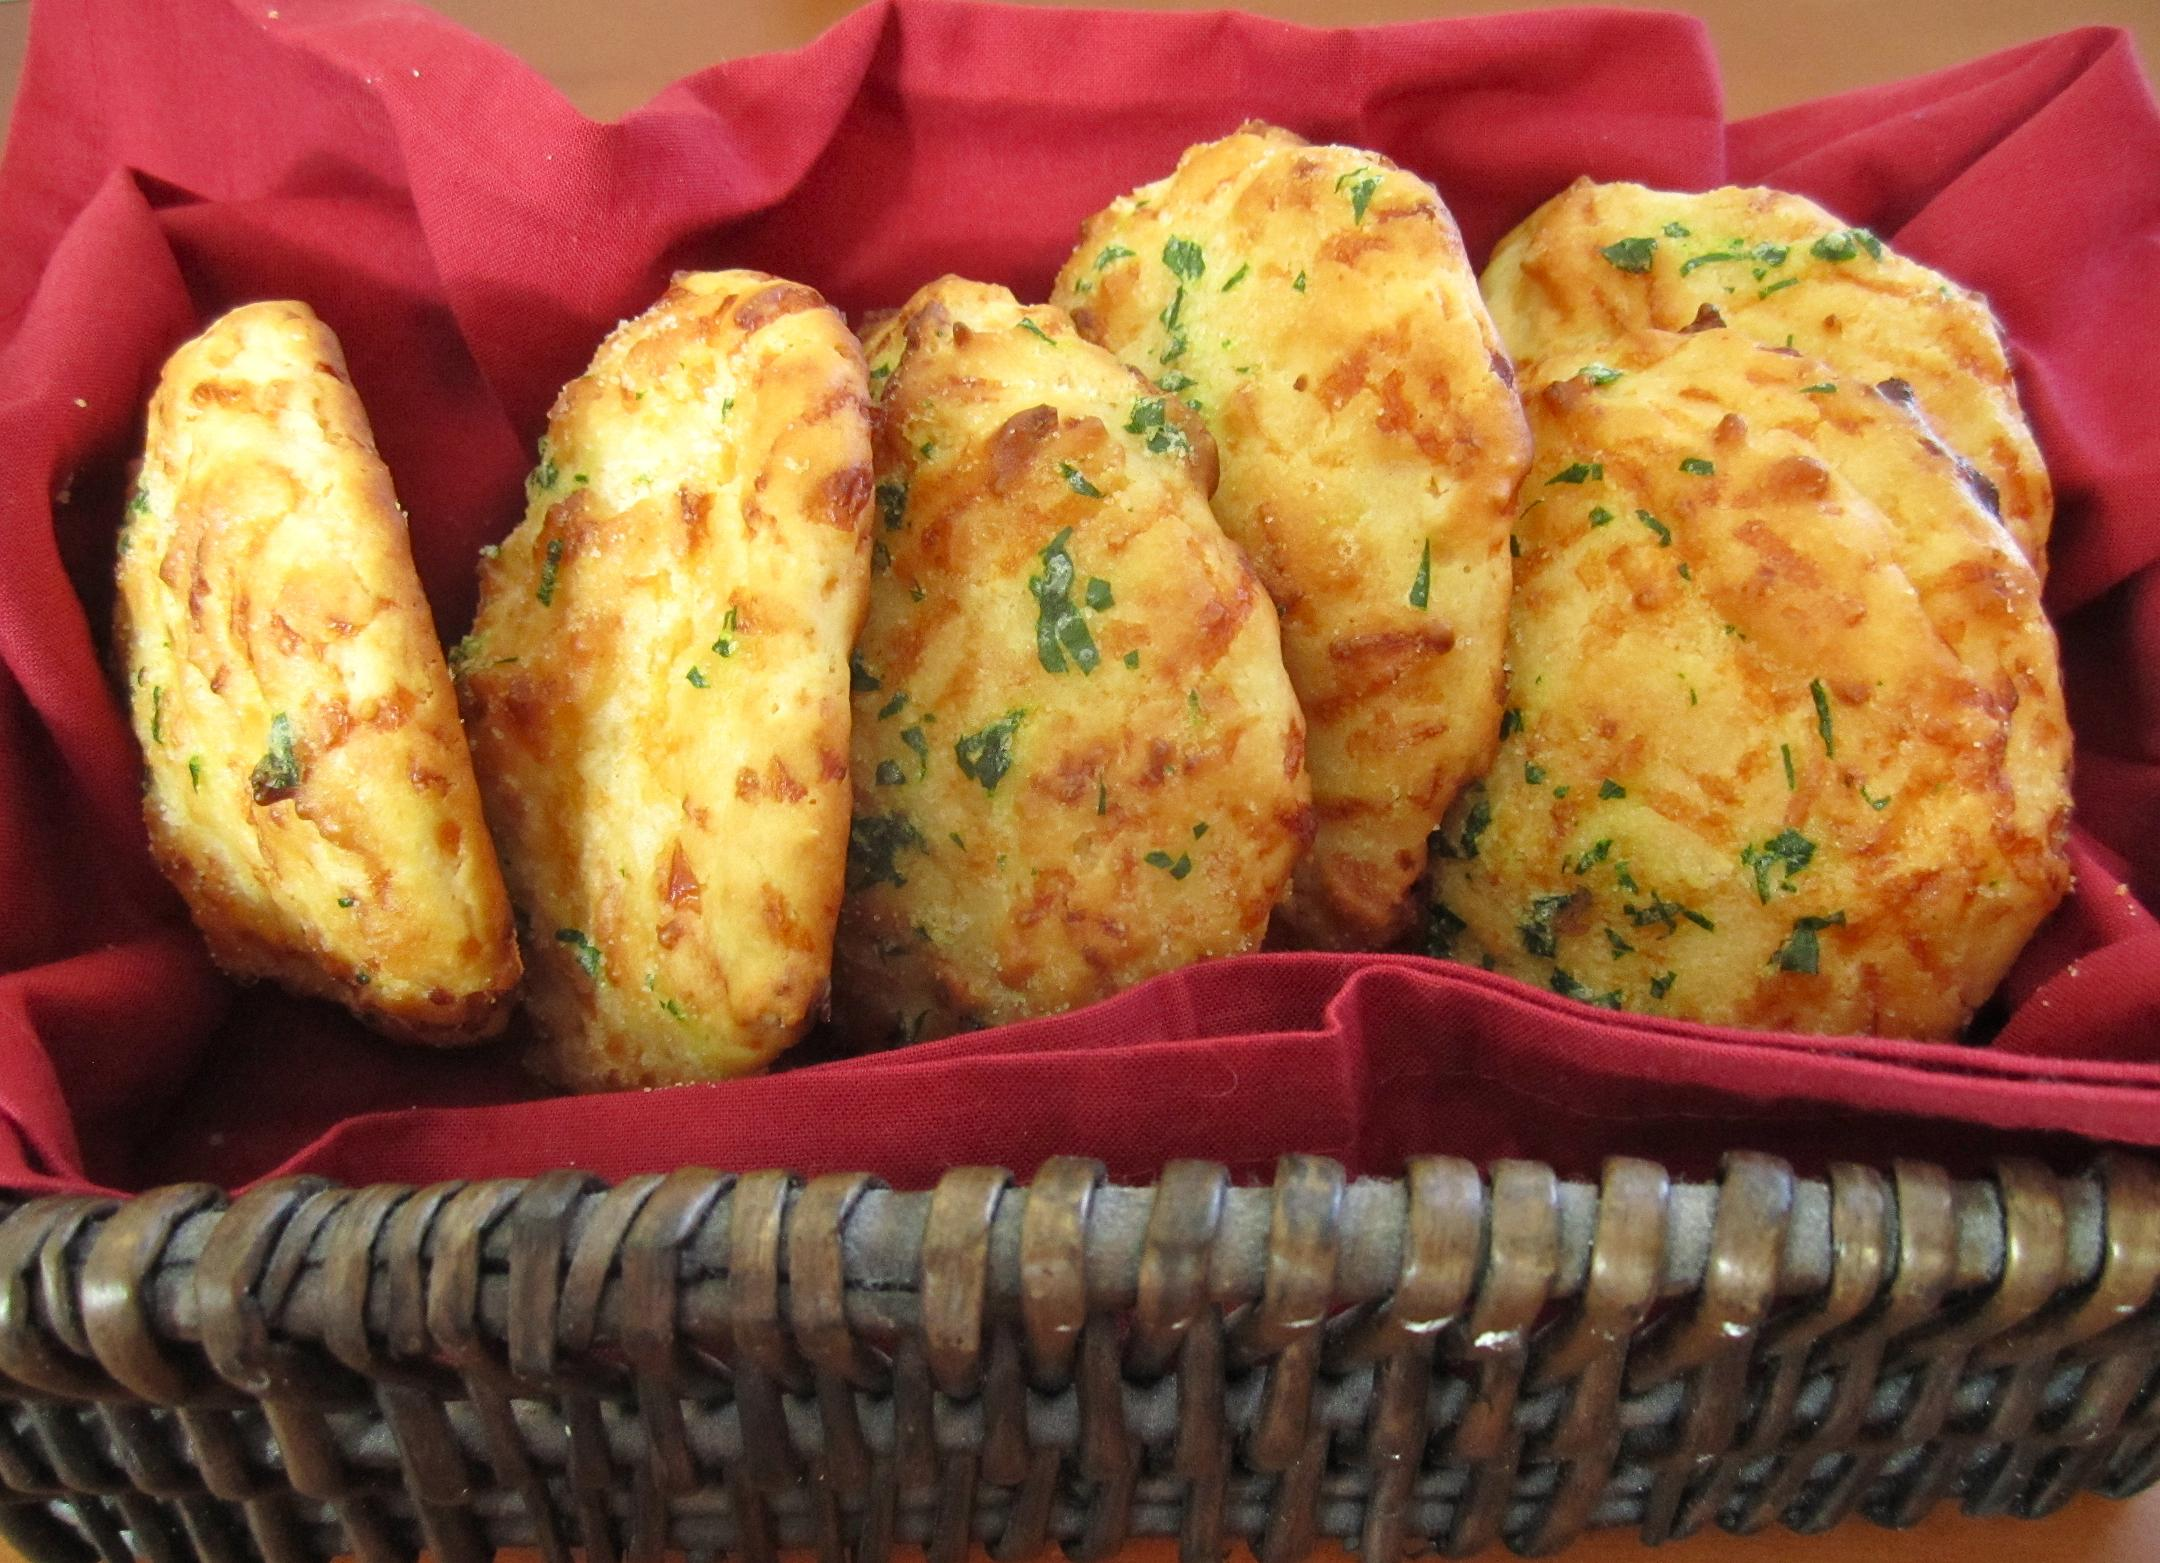 Cheddar Bay Biscuits - Eat. Drink. Love.